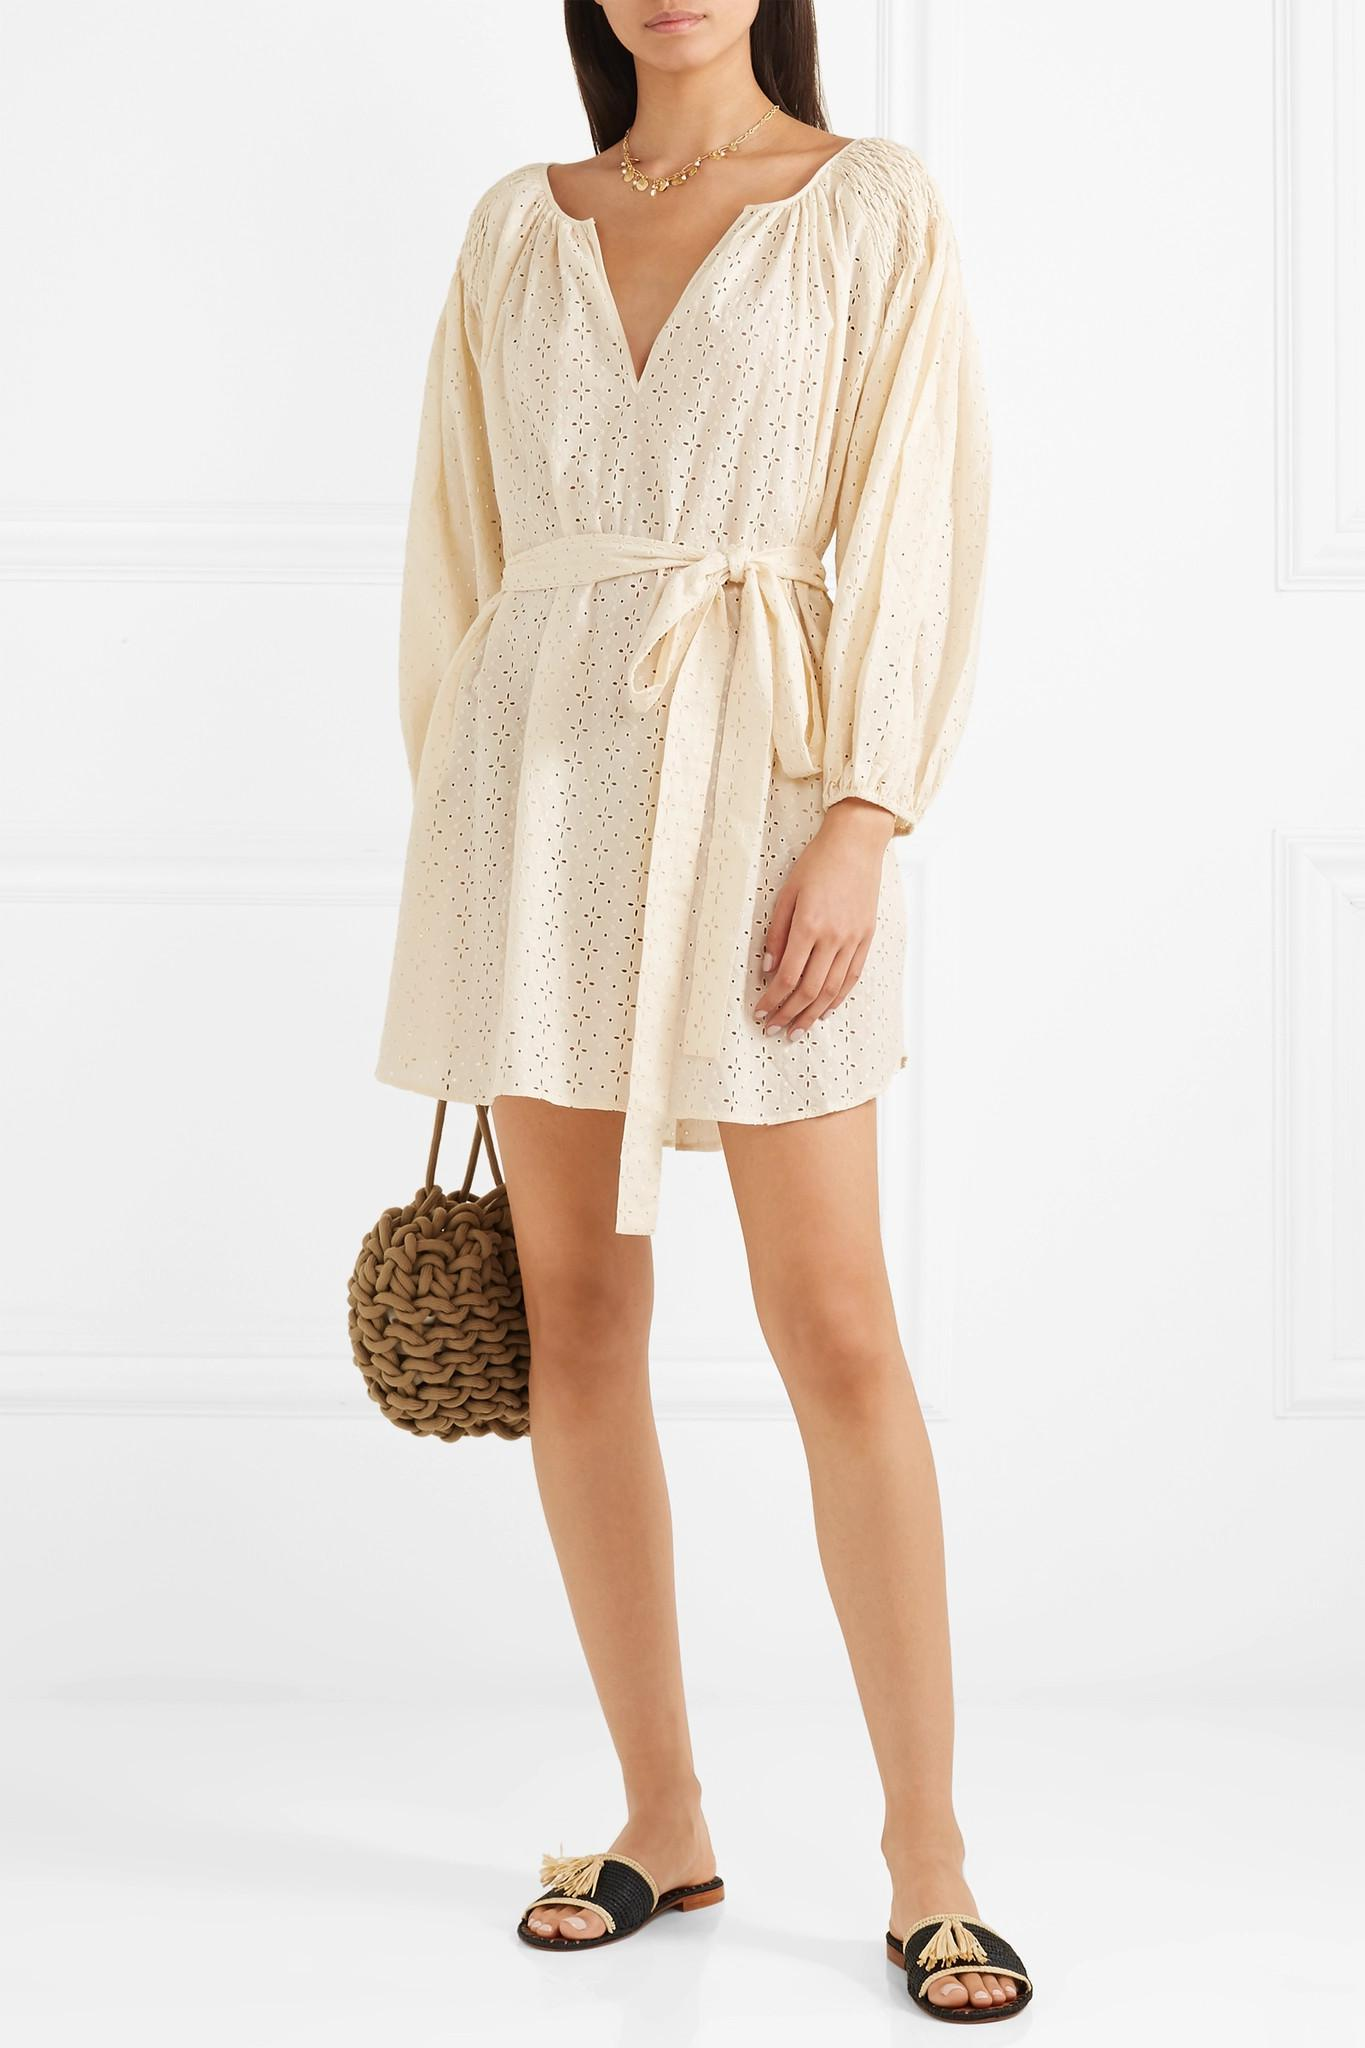 San Salvador Broderie Anglaise Cotton Mini Dress - Cream Marysia Swim Cheap Sale Professional New Fashion Style Of Cheap Enjoy Buy Cheap Manchester sQUwF